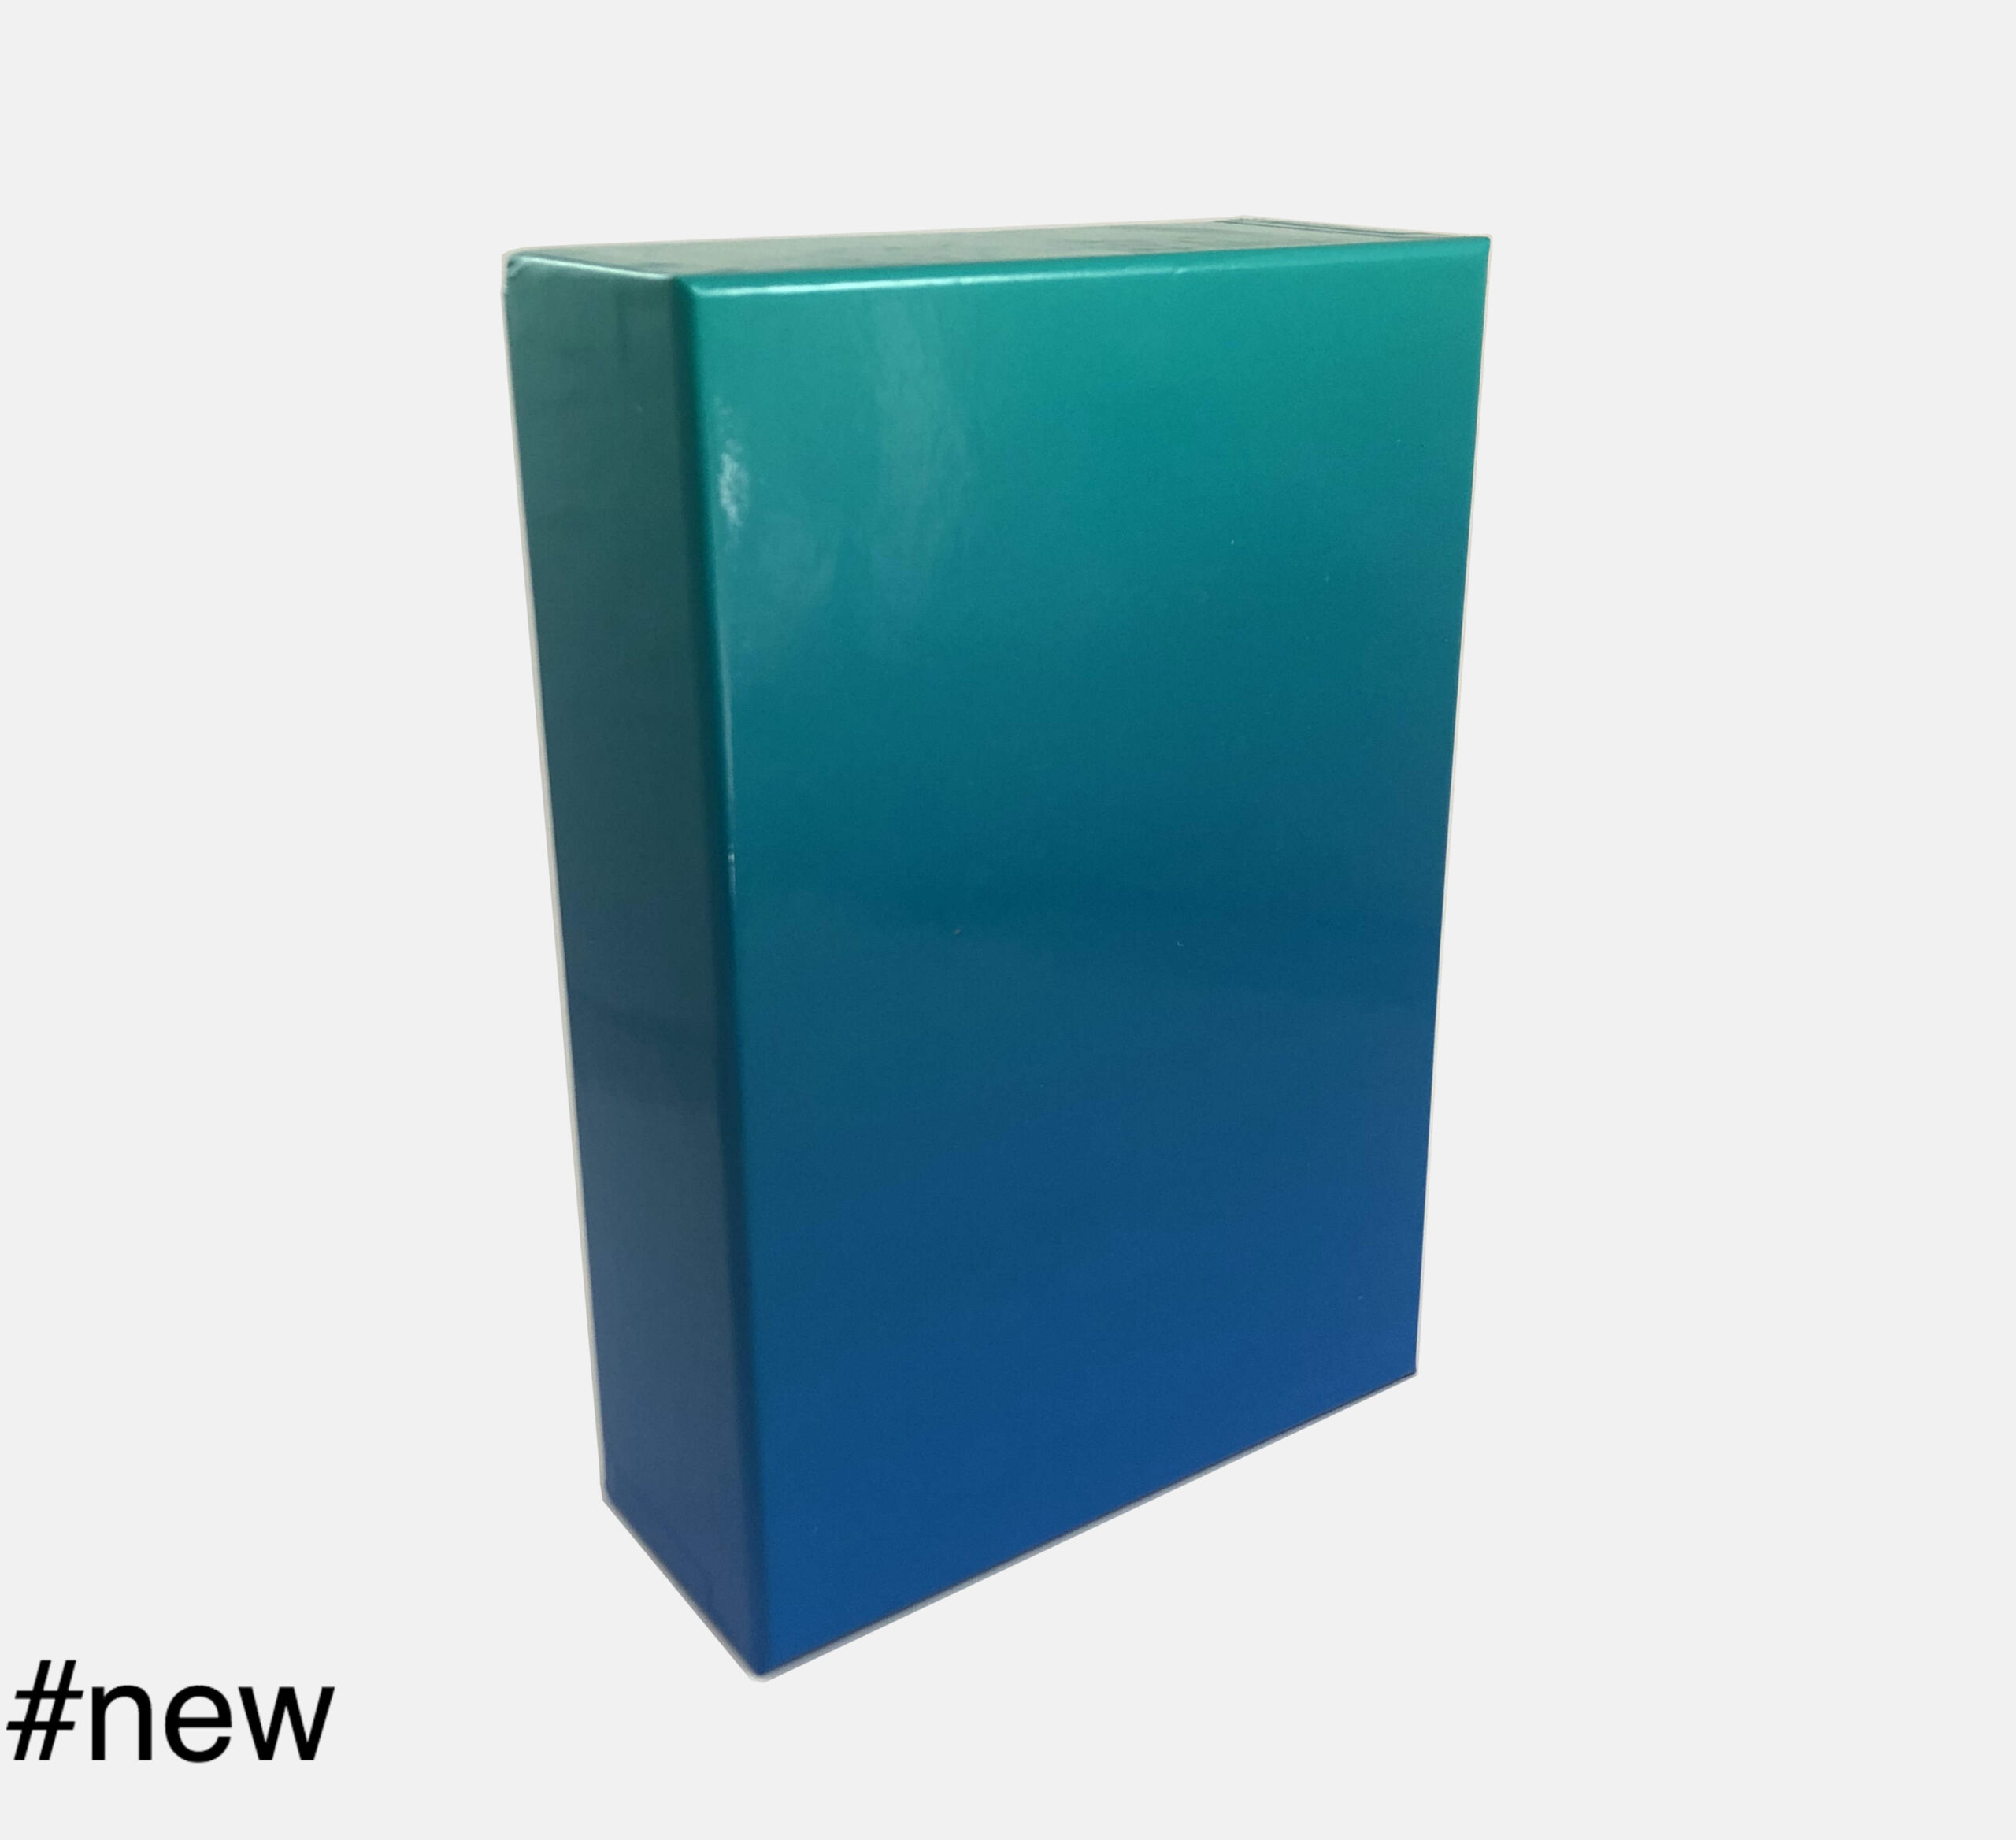 areaware gradient puzzle blue green box only (1)